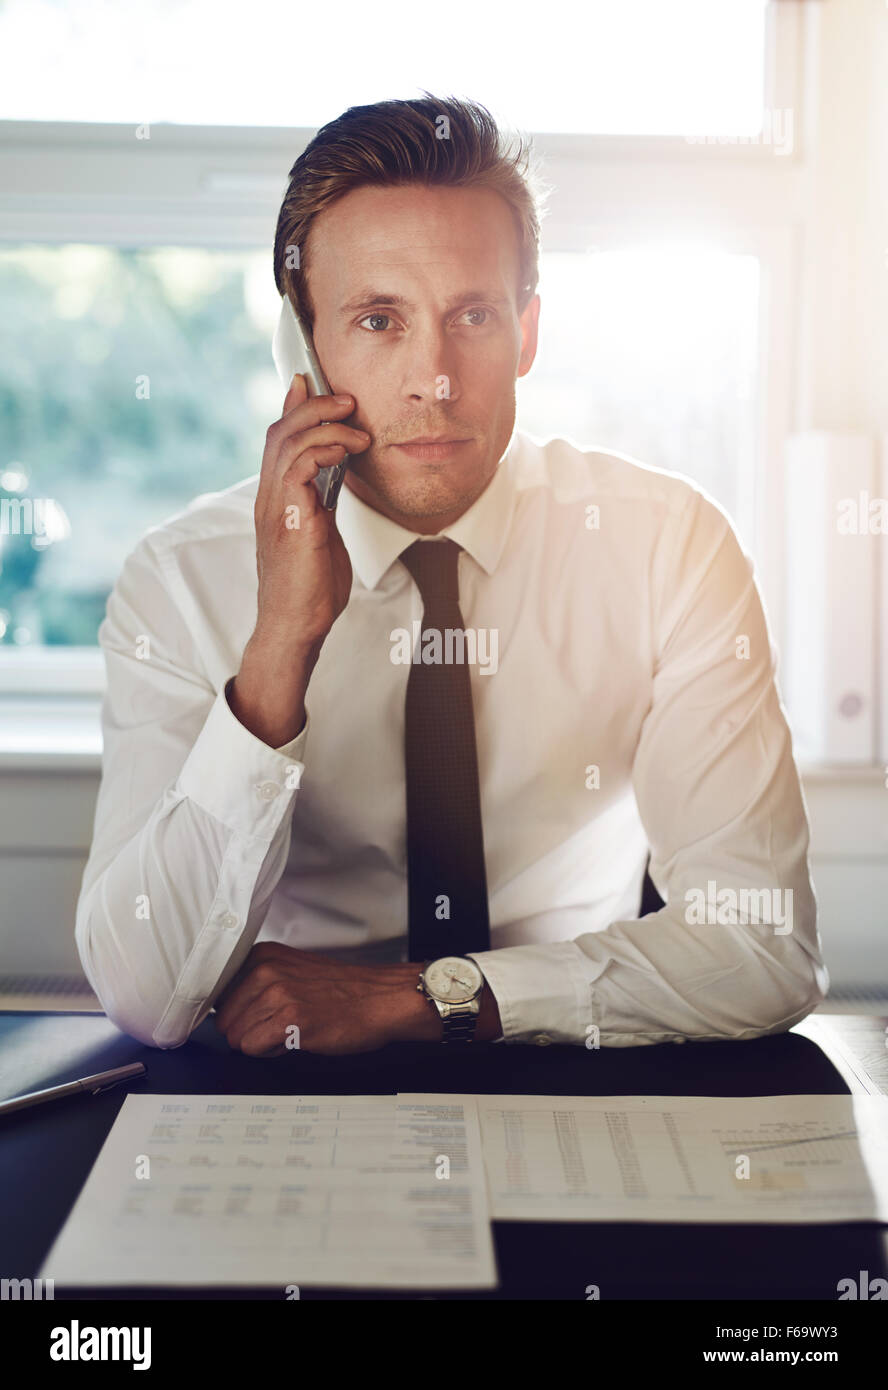 Portrait of business man talking on the phone with documents on the desk - Stock Image